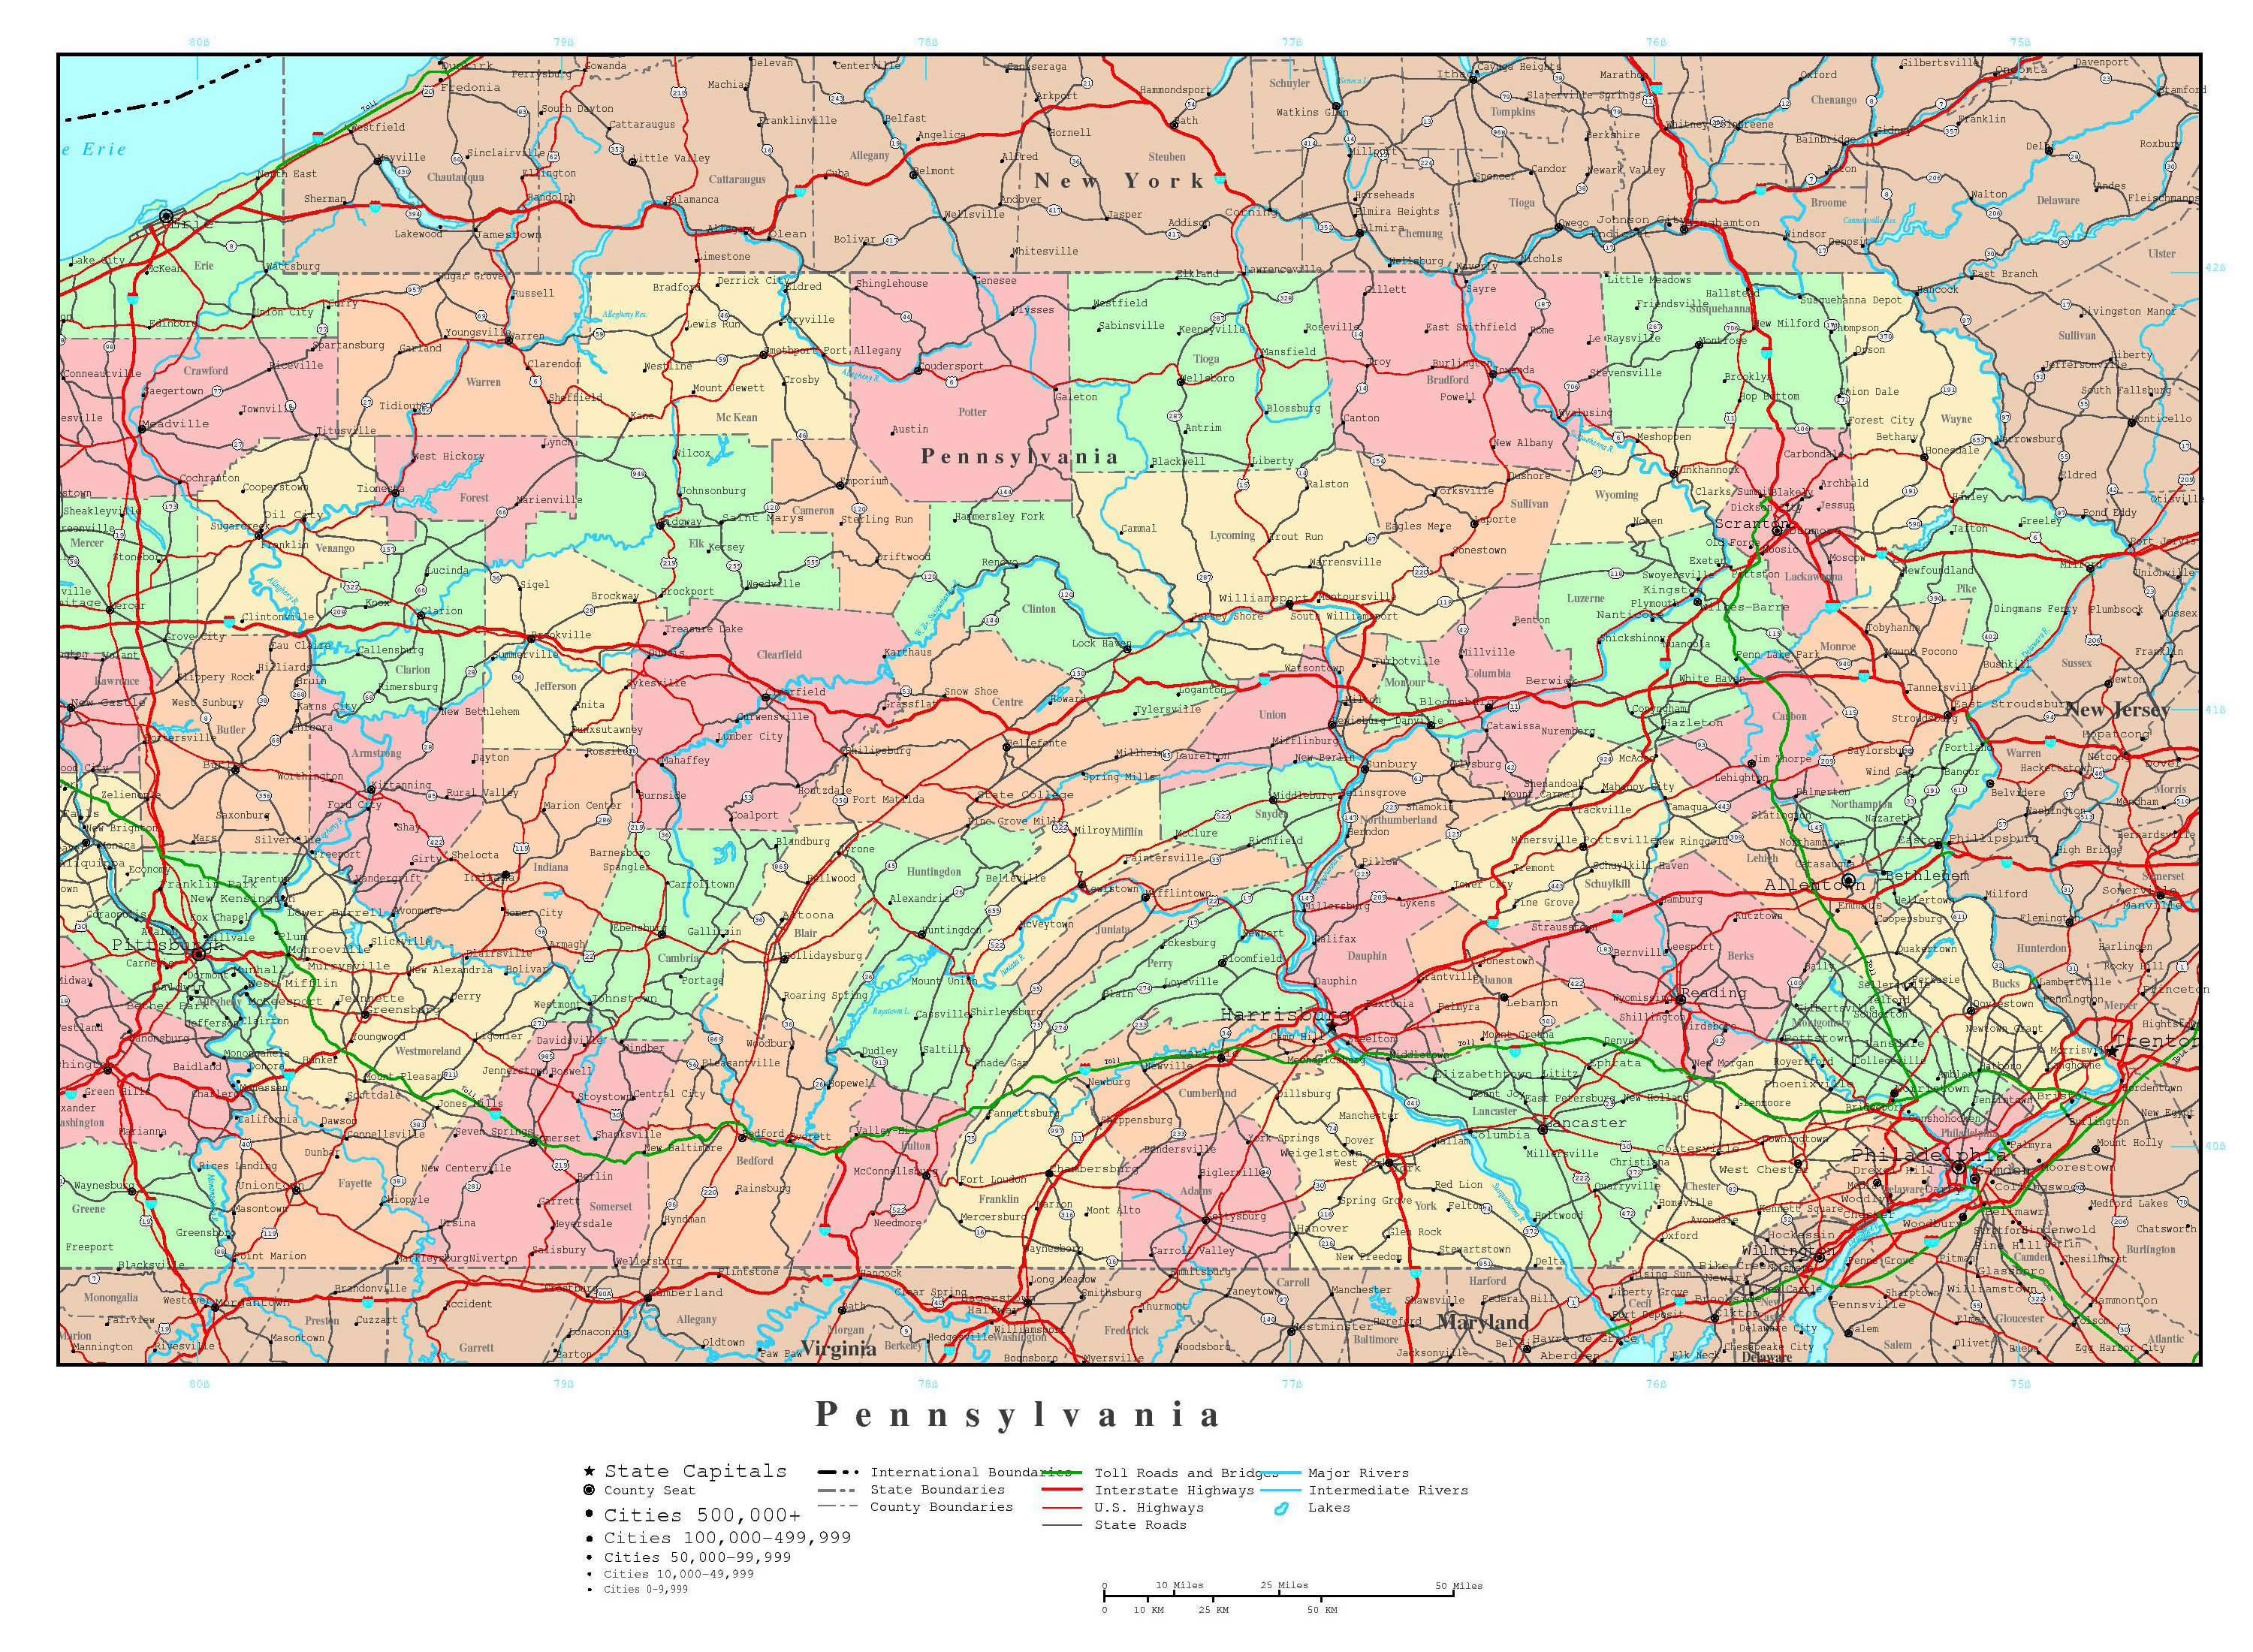 Large Detailed Administrative Map Of Pennsylvania State With Roads - Pennsylvania in usa map